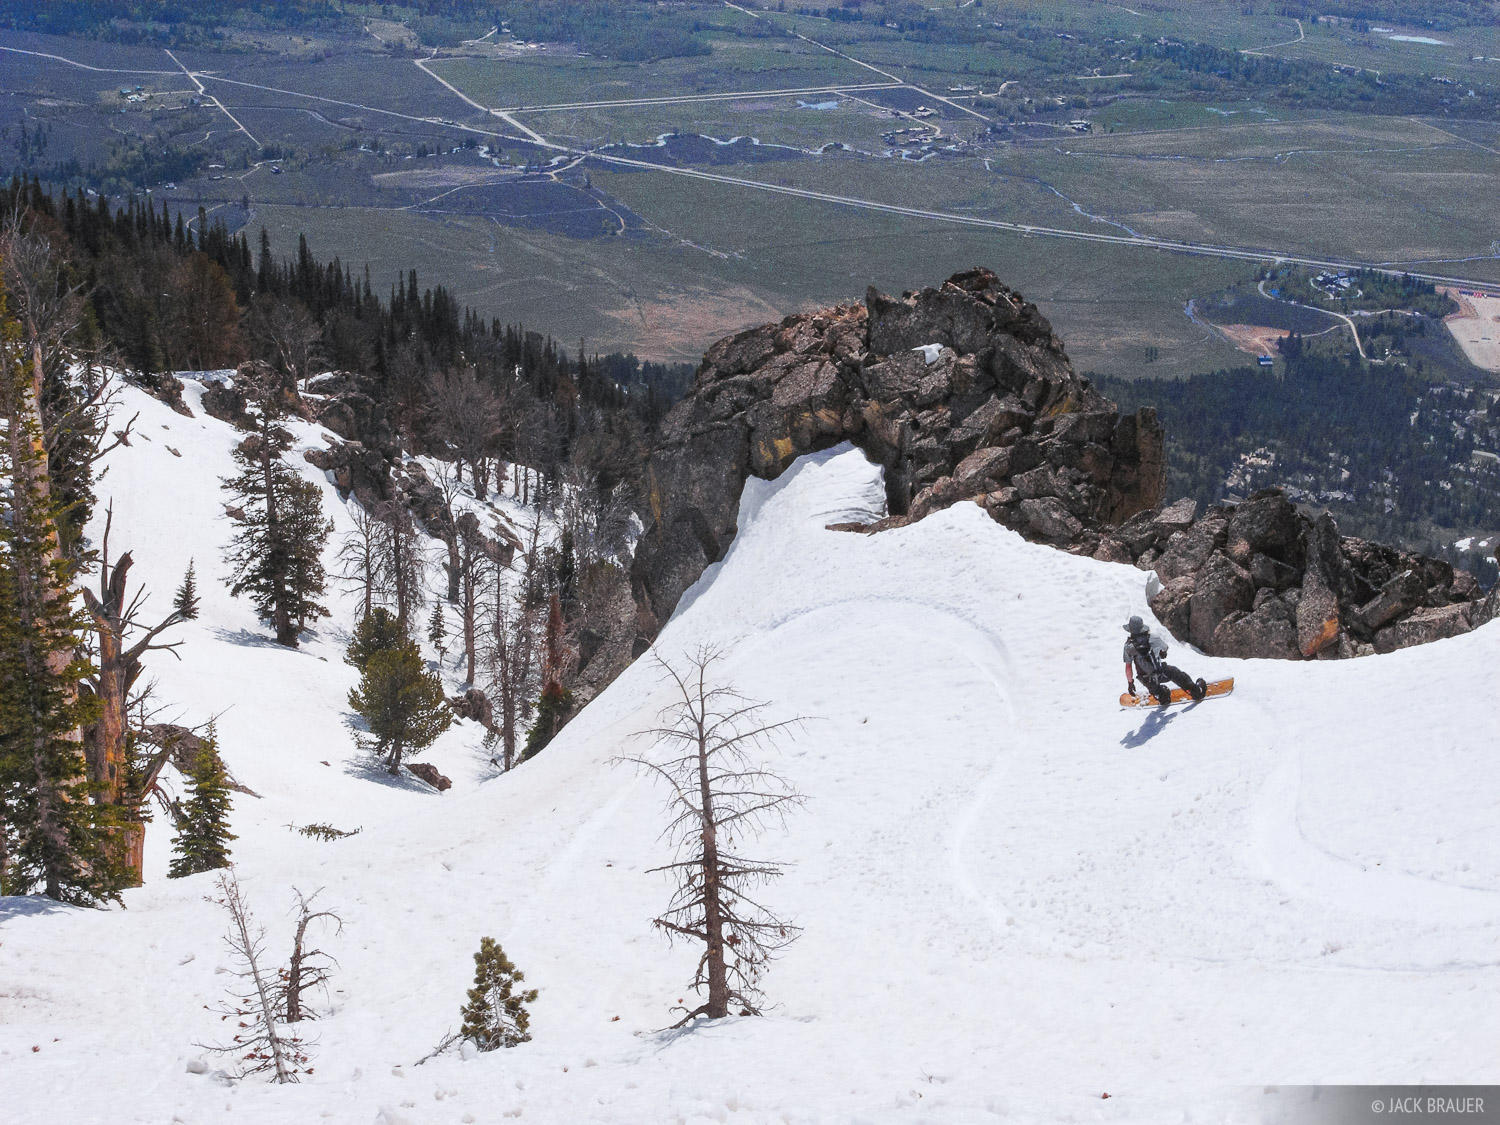 Tetons, Wyoming, snowboarding, Granite Canyon, spring, may, photo